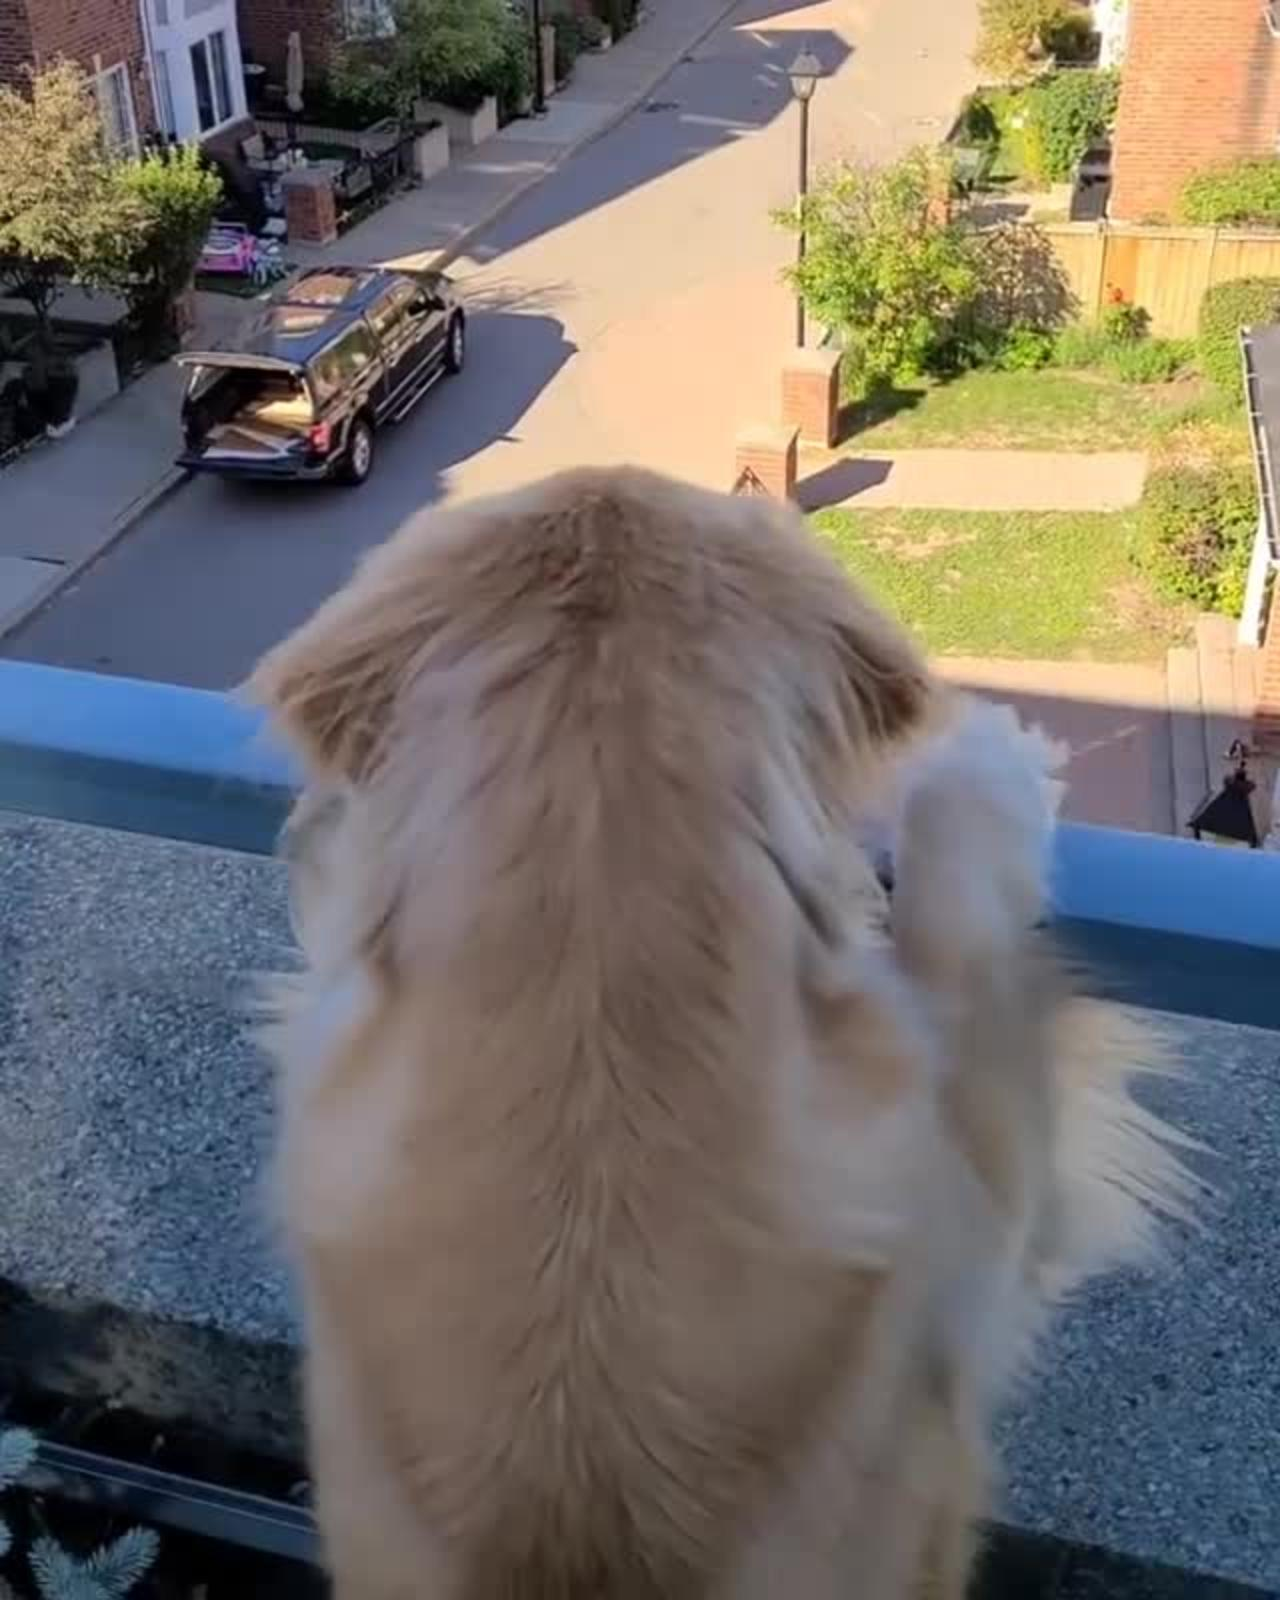 Golden retriever watches from balcony as owner goes for ride without him